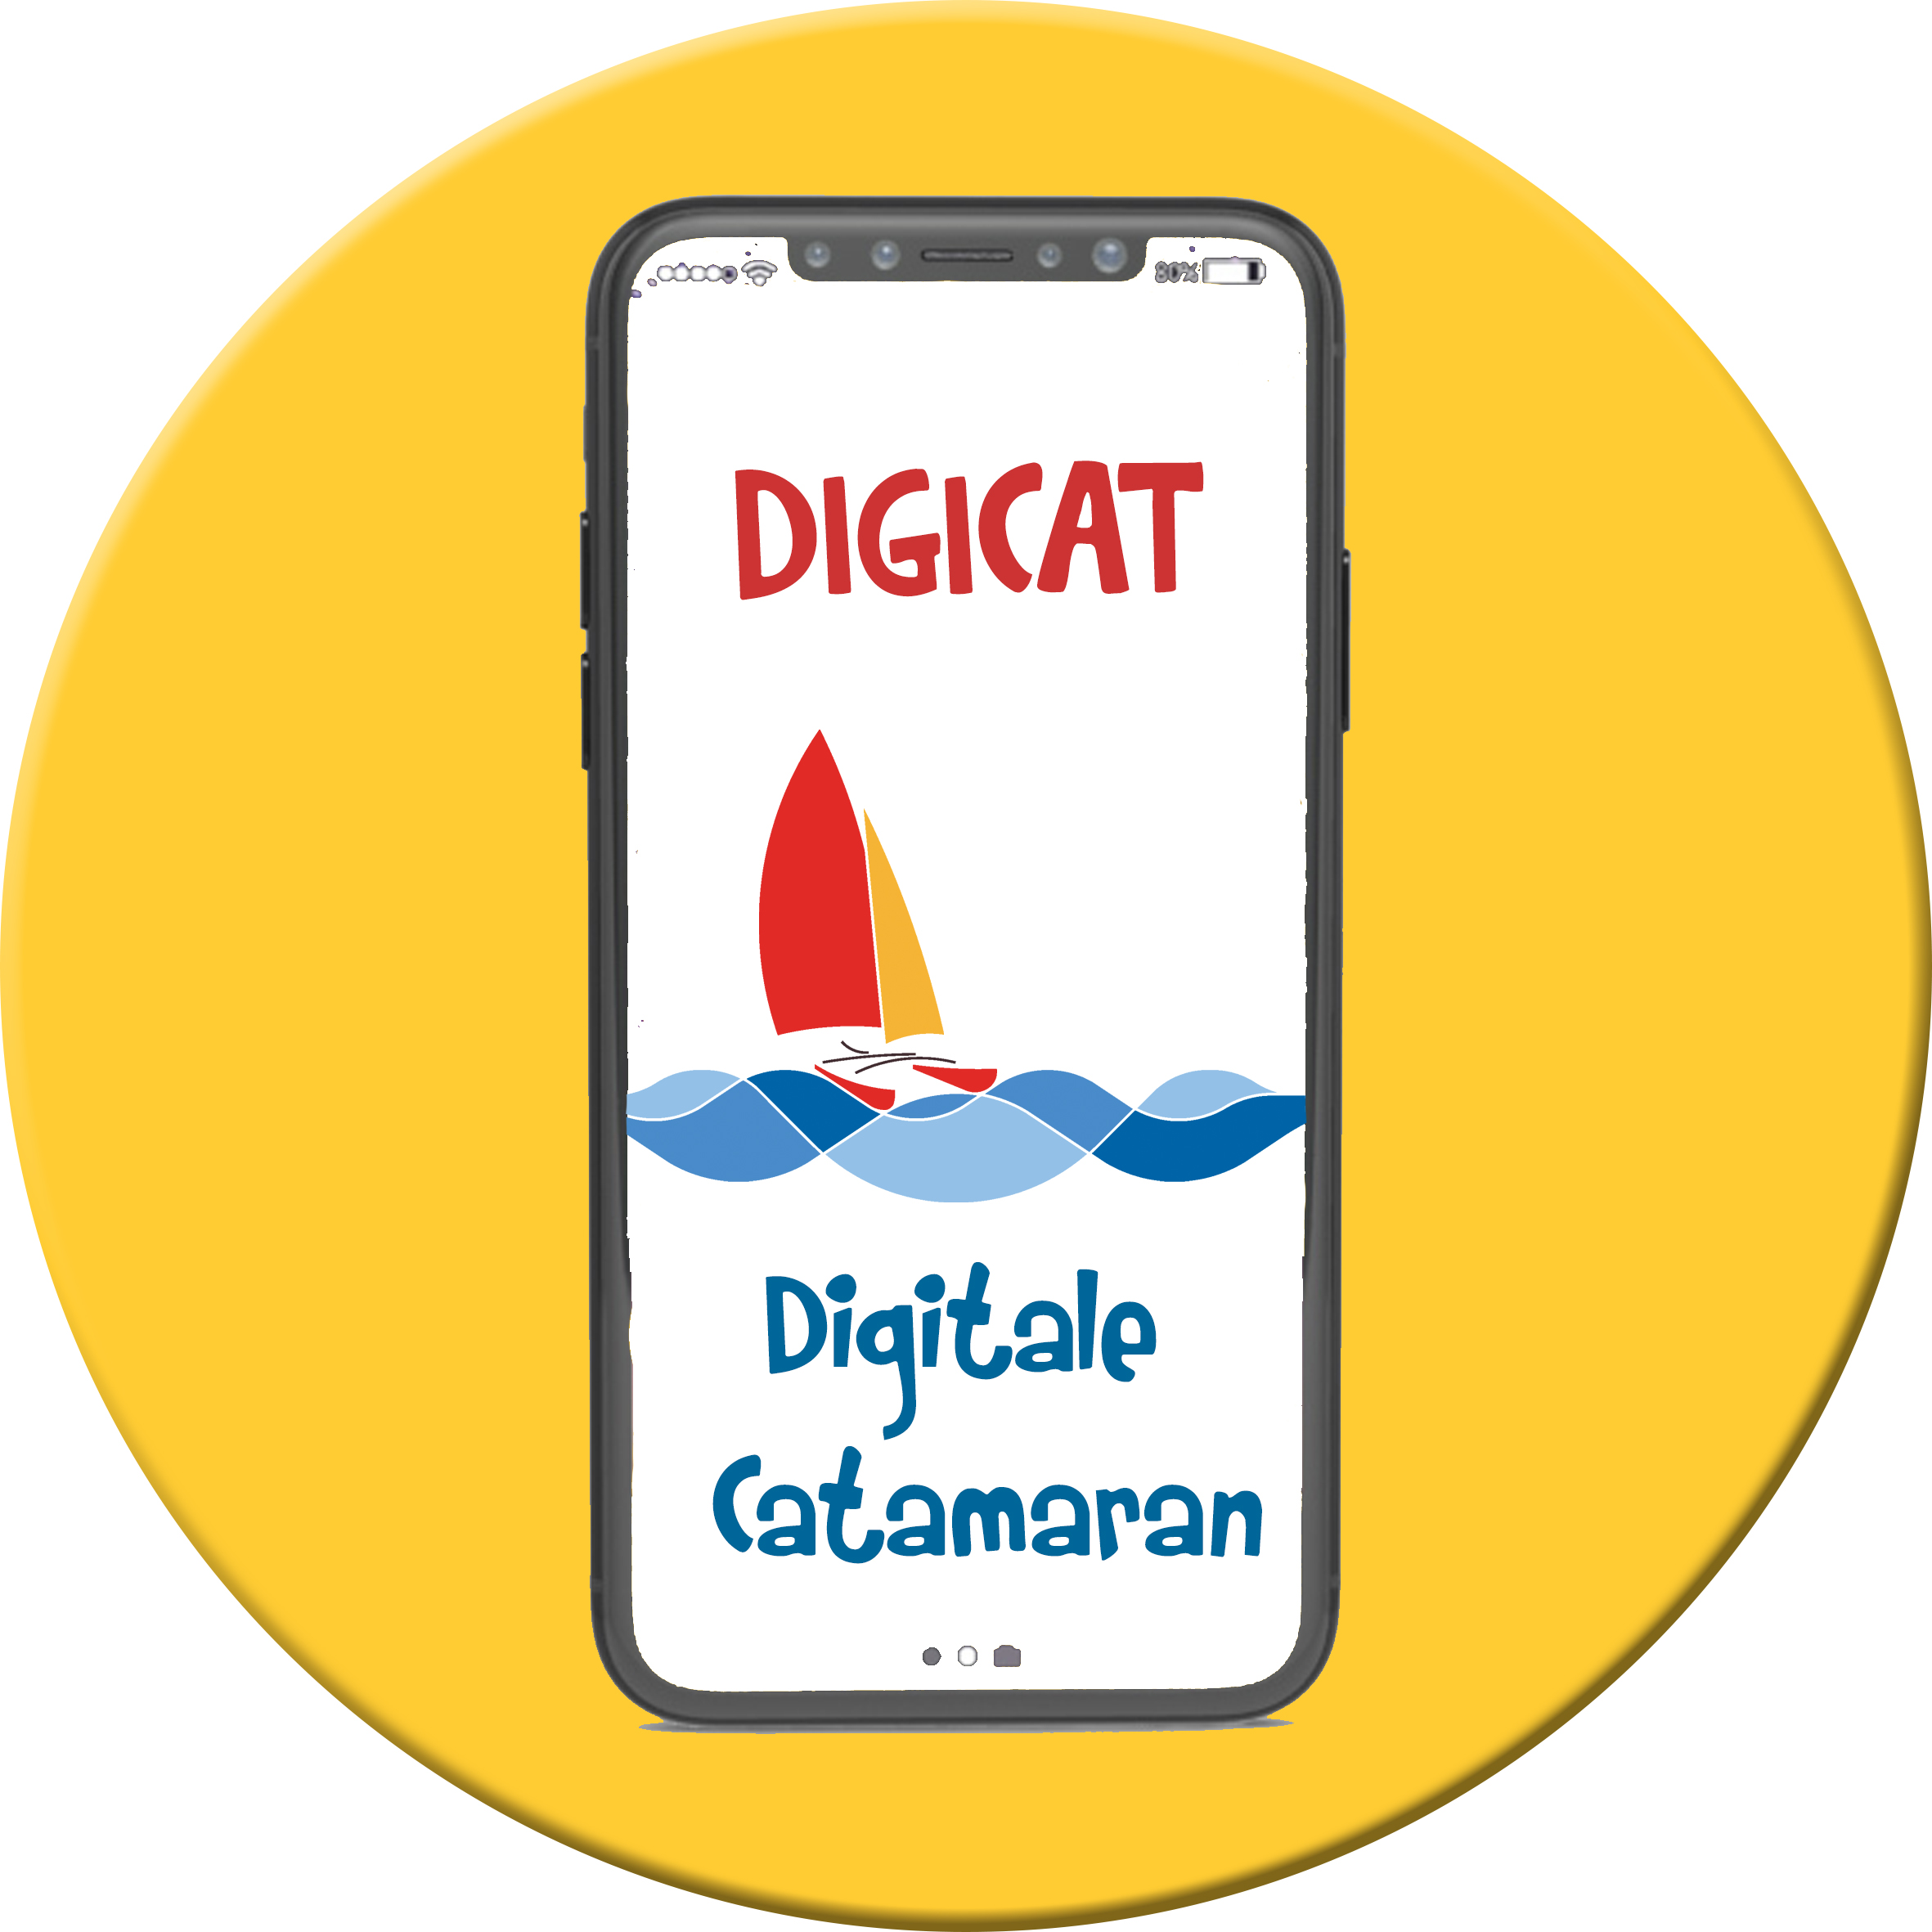 Digitale Catamaran